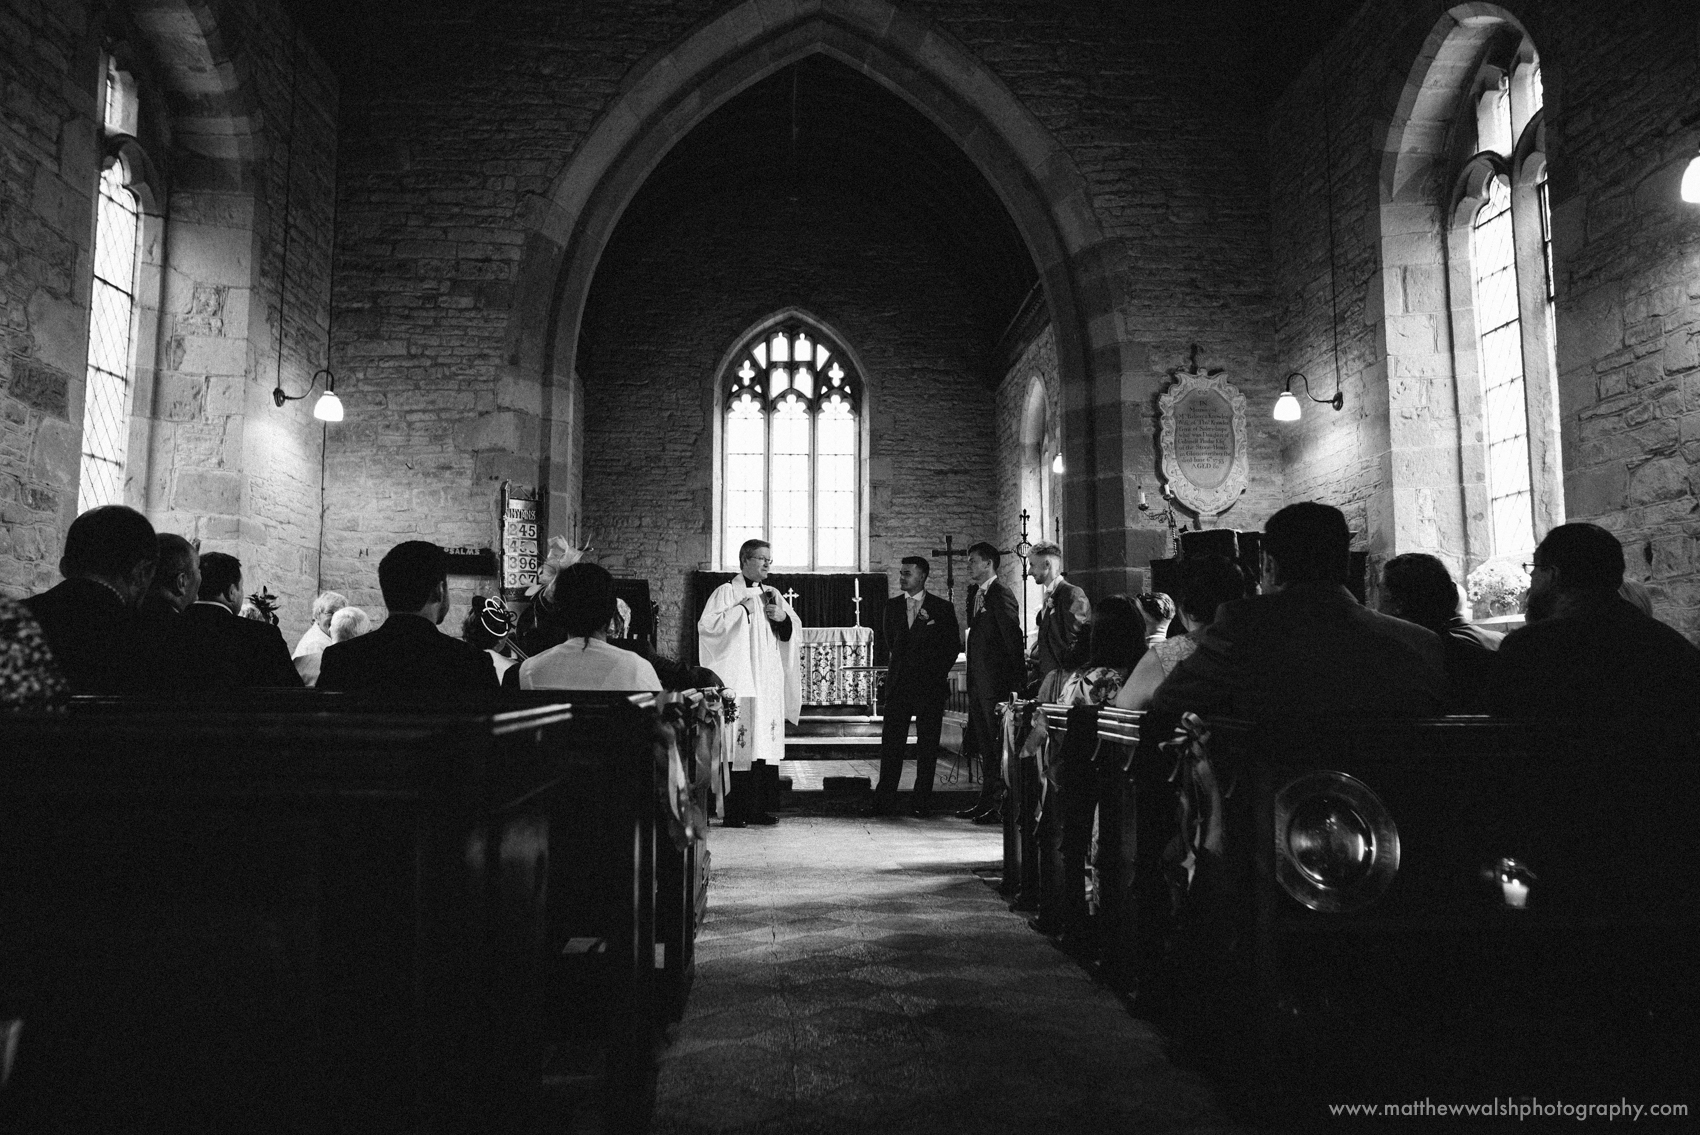 The Vicar speaks to the gathered Groom and guests, please turn phones off and no photographer during the ceremony, there will be an opportunity at the end for photographs.